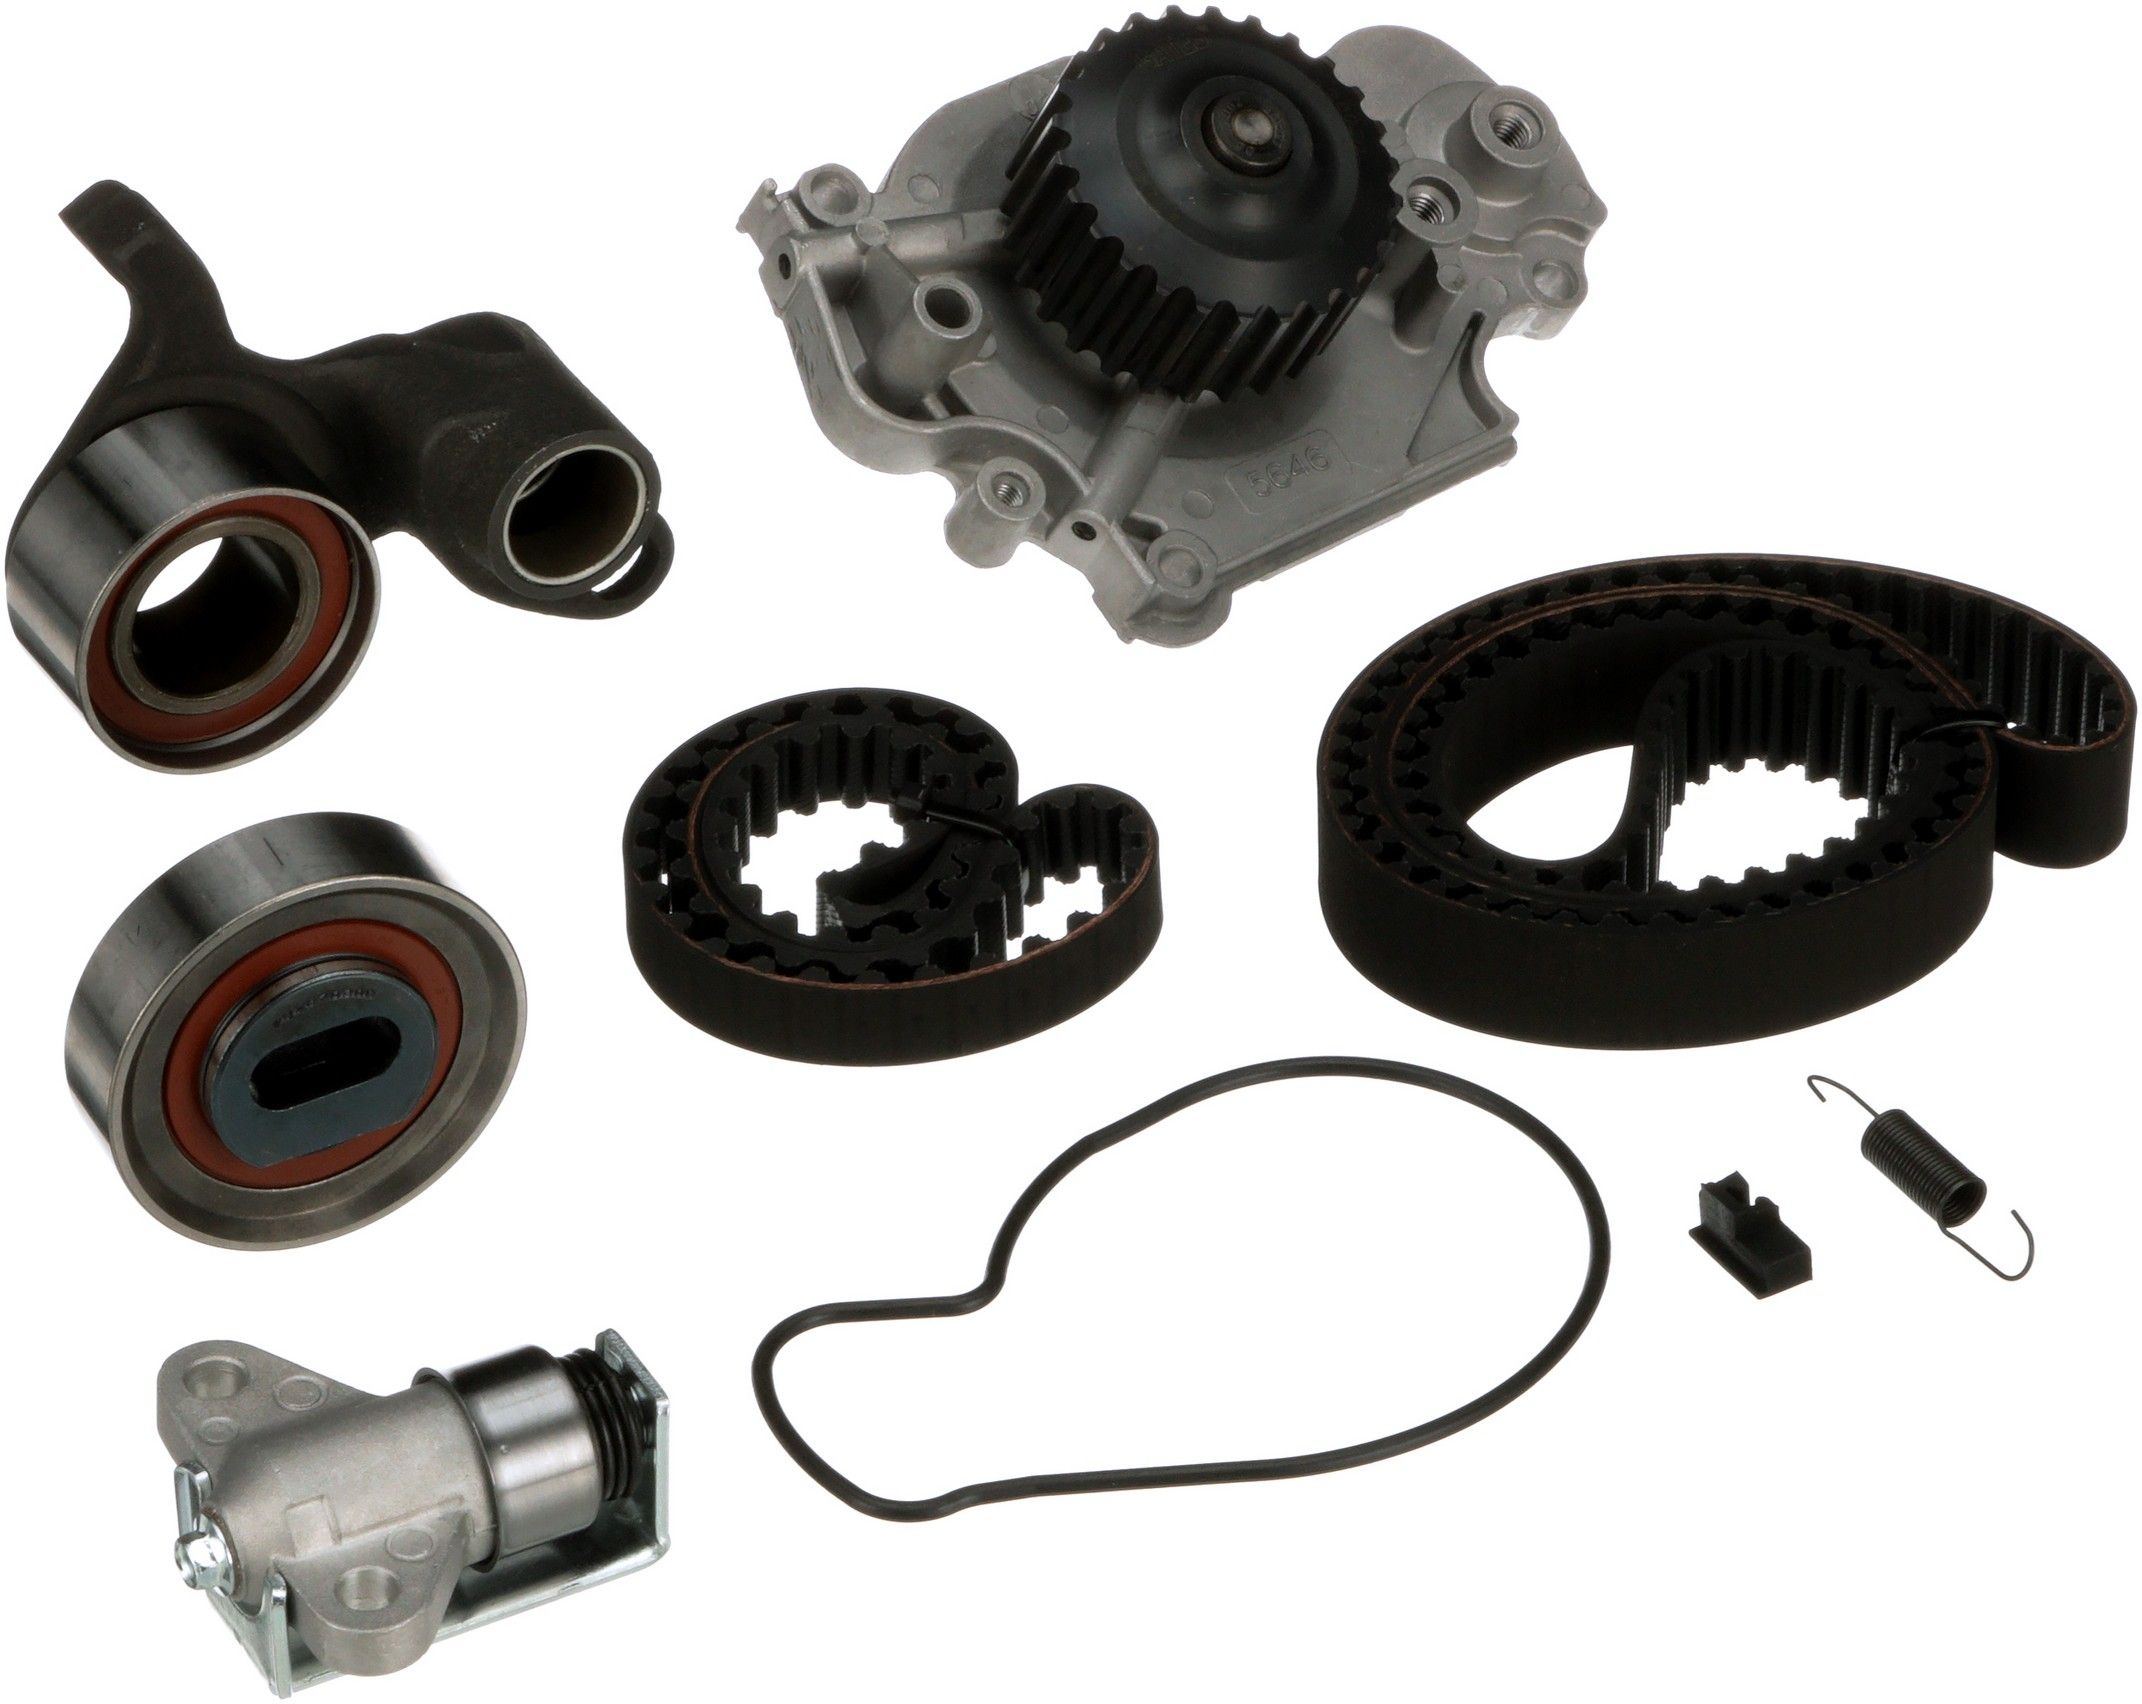 Honda Prelude Engine Timing Belt Kit With Water Pump Replacement 1992 Balancer 2001 4 Cyl 22l Gates Tckwp226a Interference Application